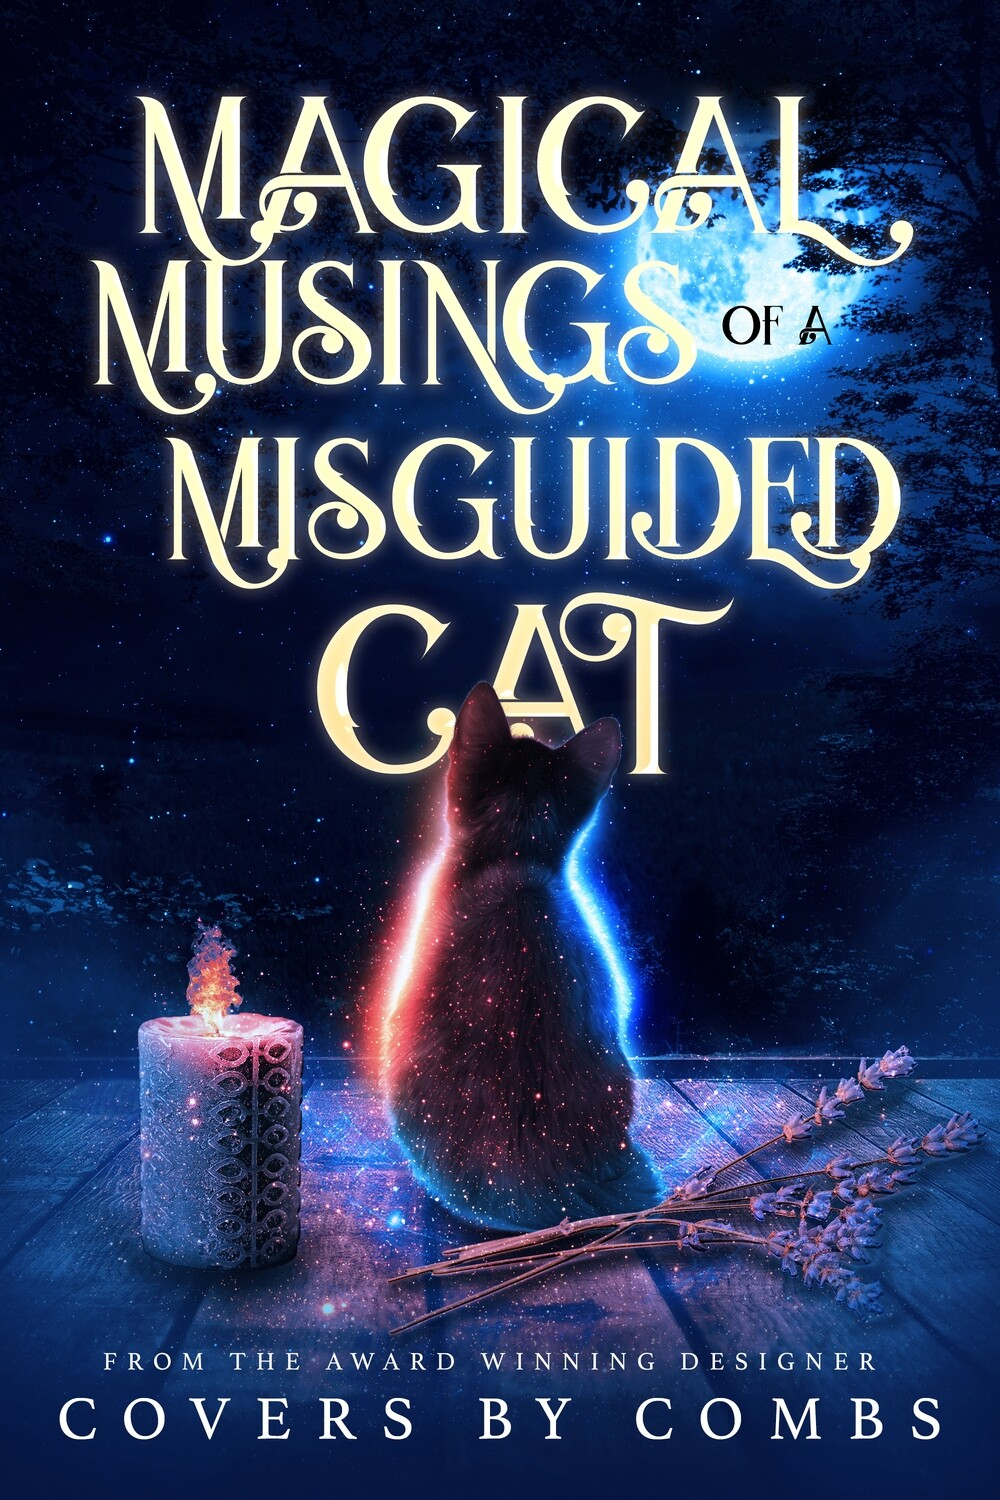 Magical Musings of a Misguided Cat